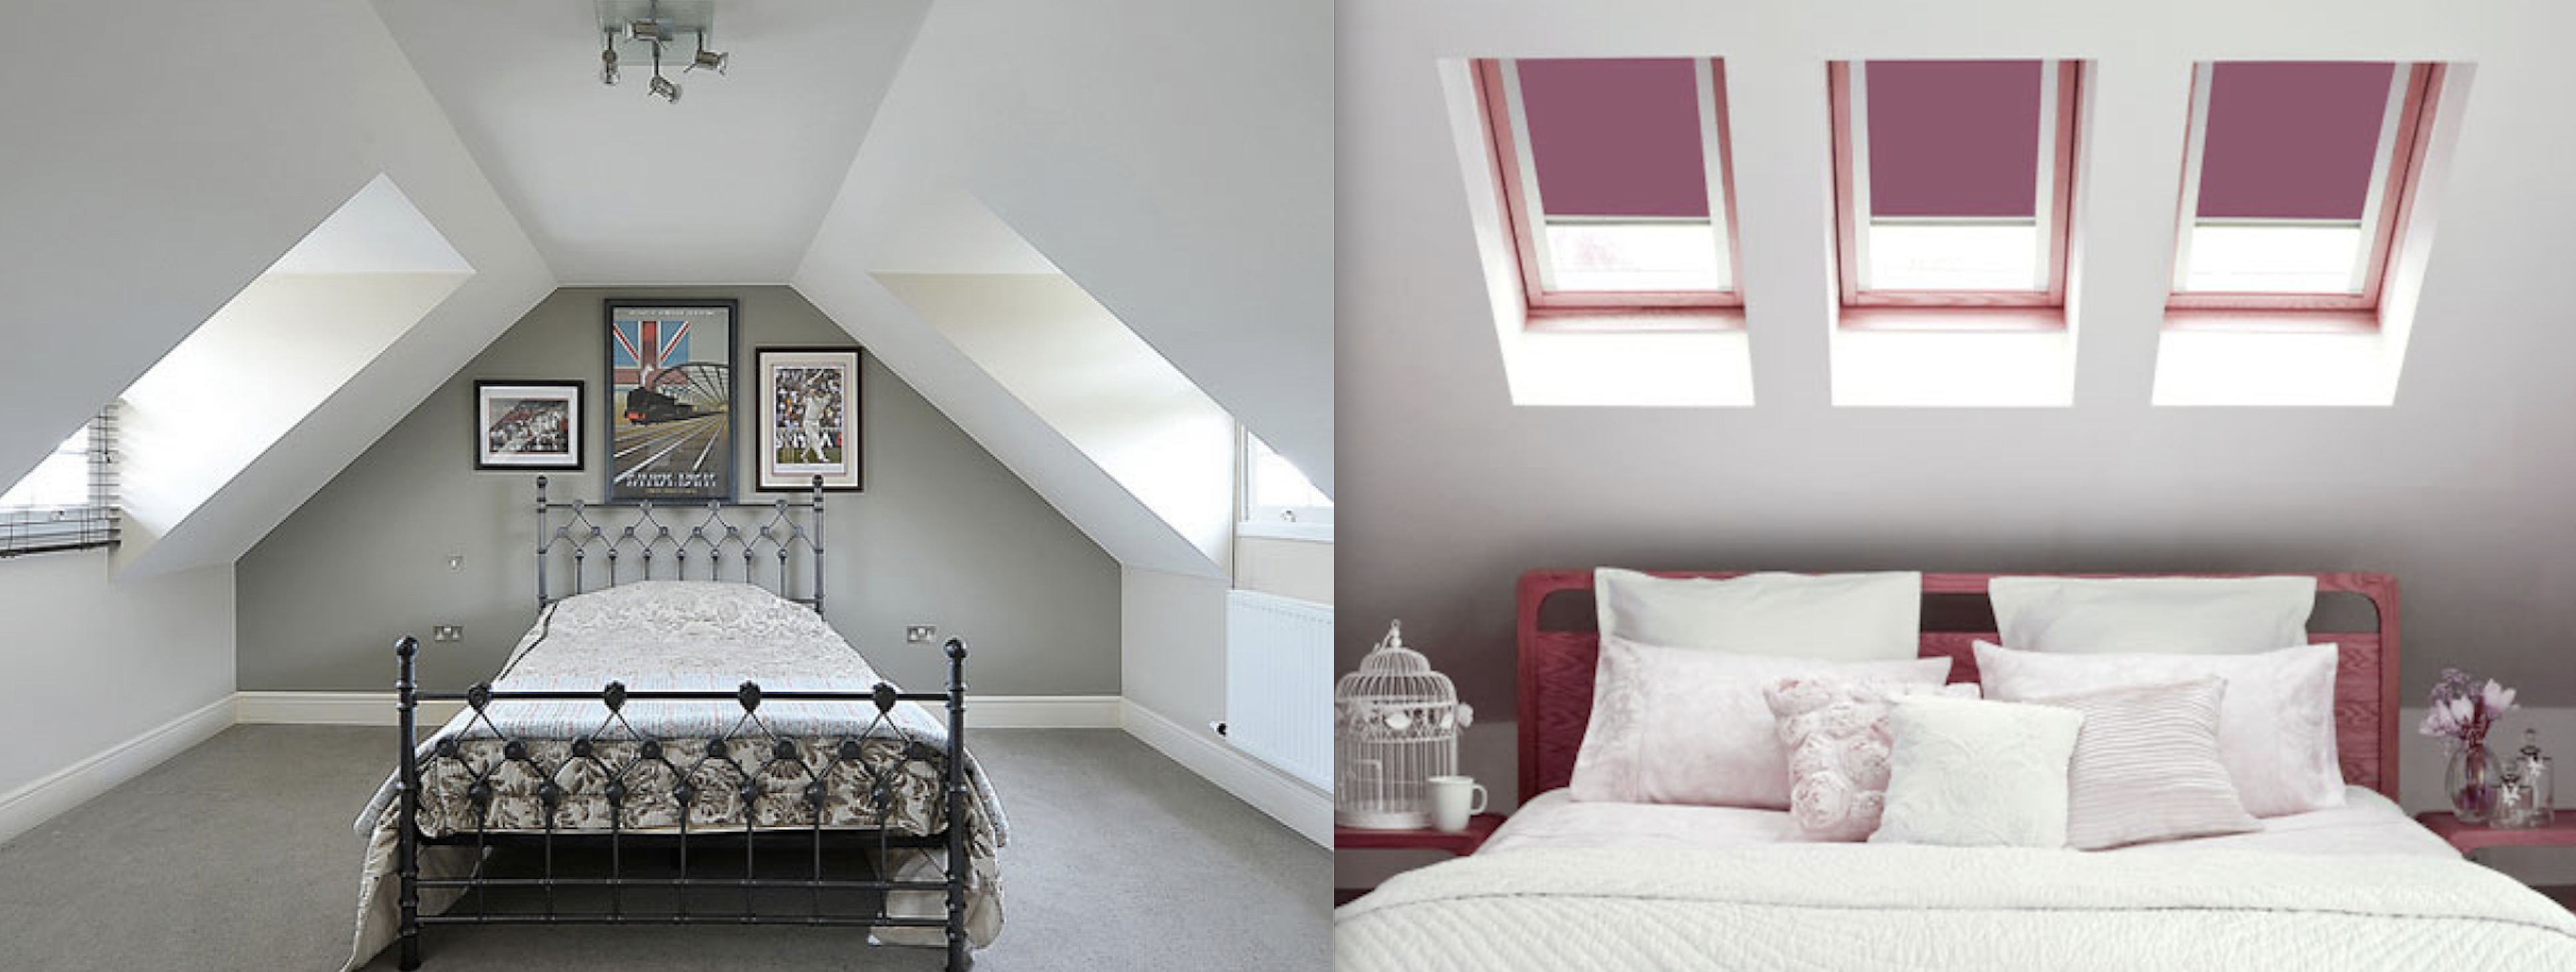 Beautiful Dormer loft conversion in Marple, creating a new master bedroom with private bathroom, walk in wardrobe and stunning new oak staircase. Six Velux polyurethane windows SK06 GGU and 6 GPU SK06 Velux windows.